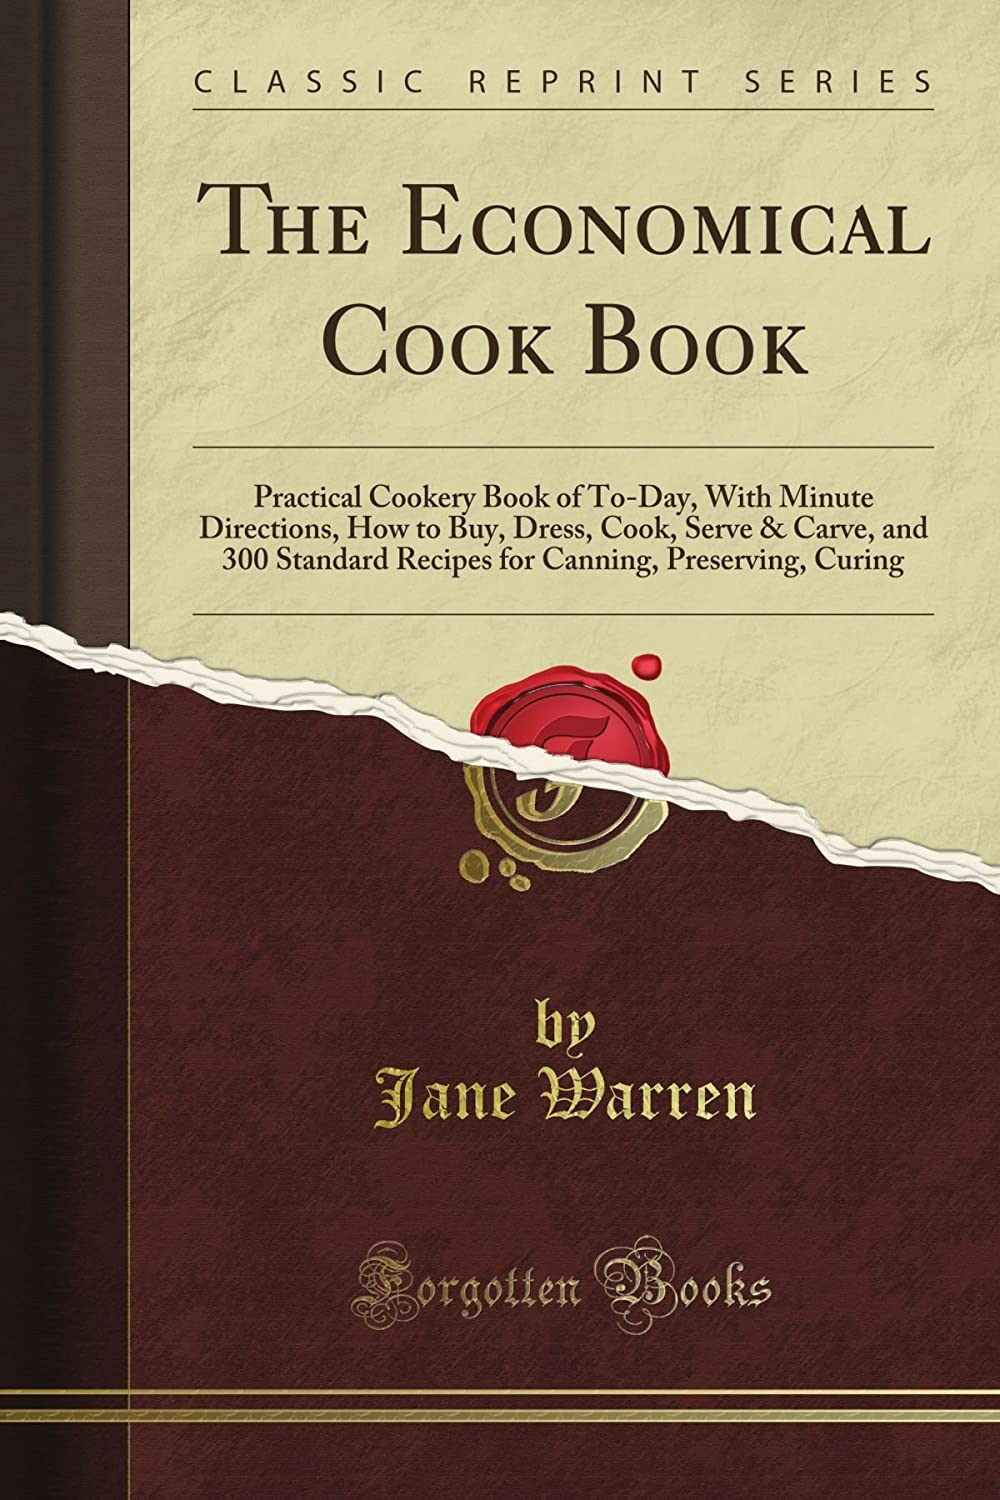 The Economical Cook Book: Practical Cookery Book of To-Day, With Minute Directions, How to Buy, Dress, Cook, Serve & Carve, and 300 Standard Recipes for Canning, Preserving, Curing (Classic Reprint)